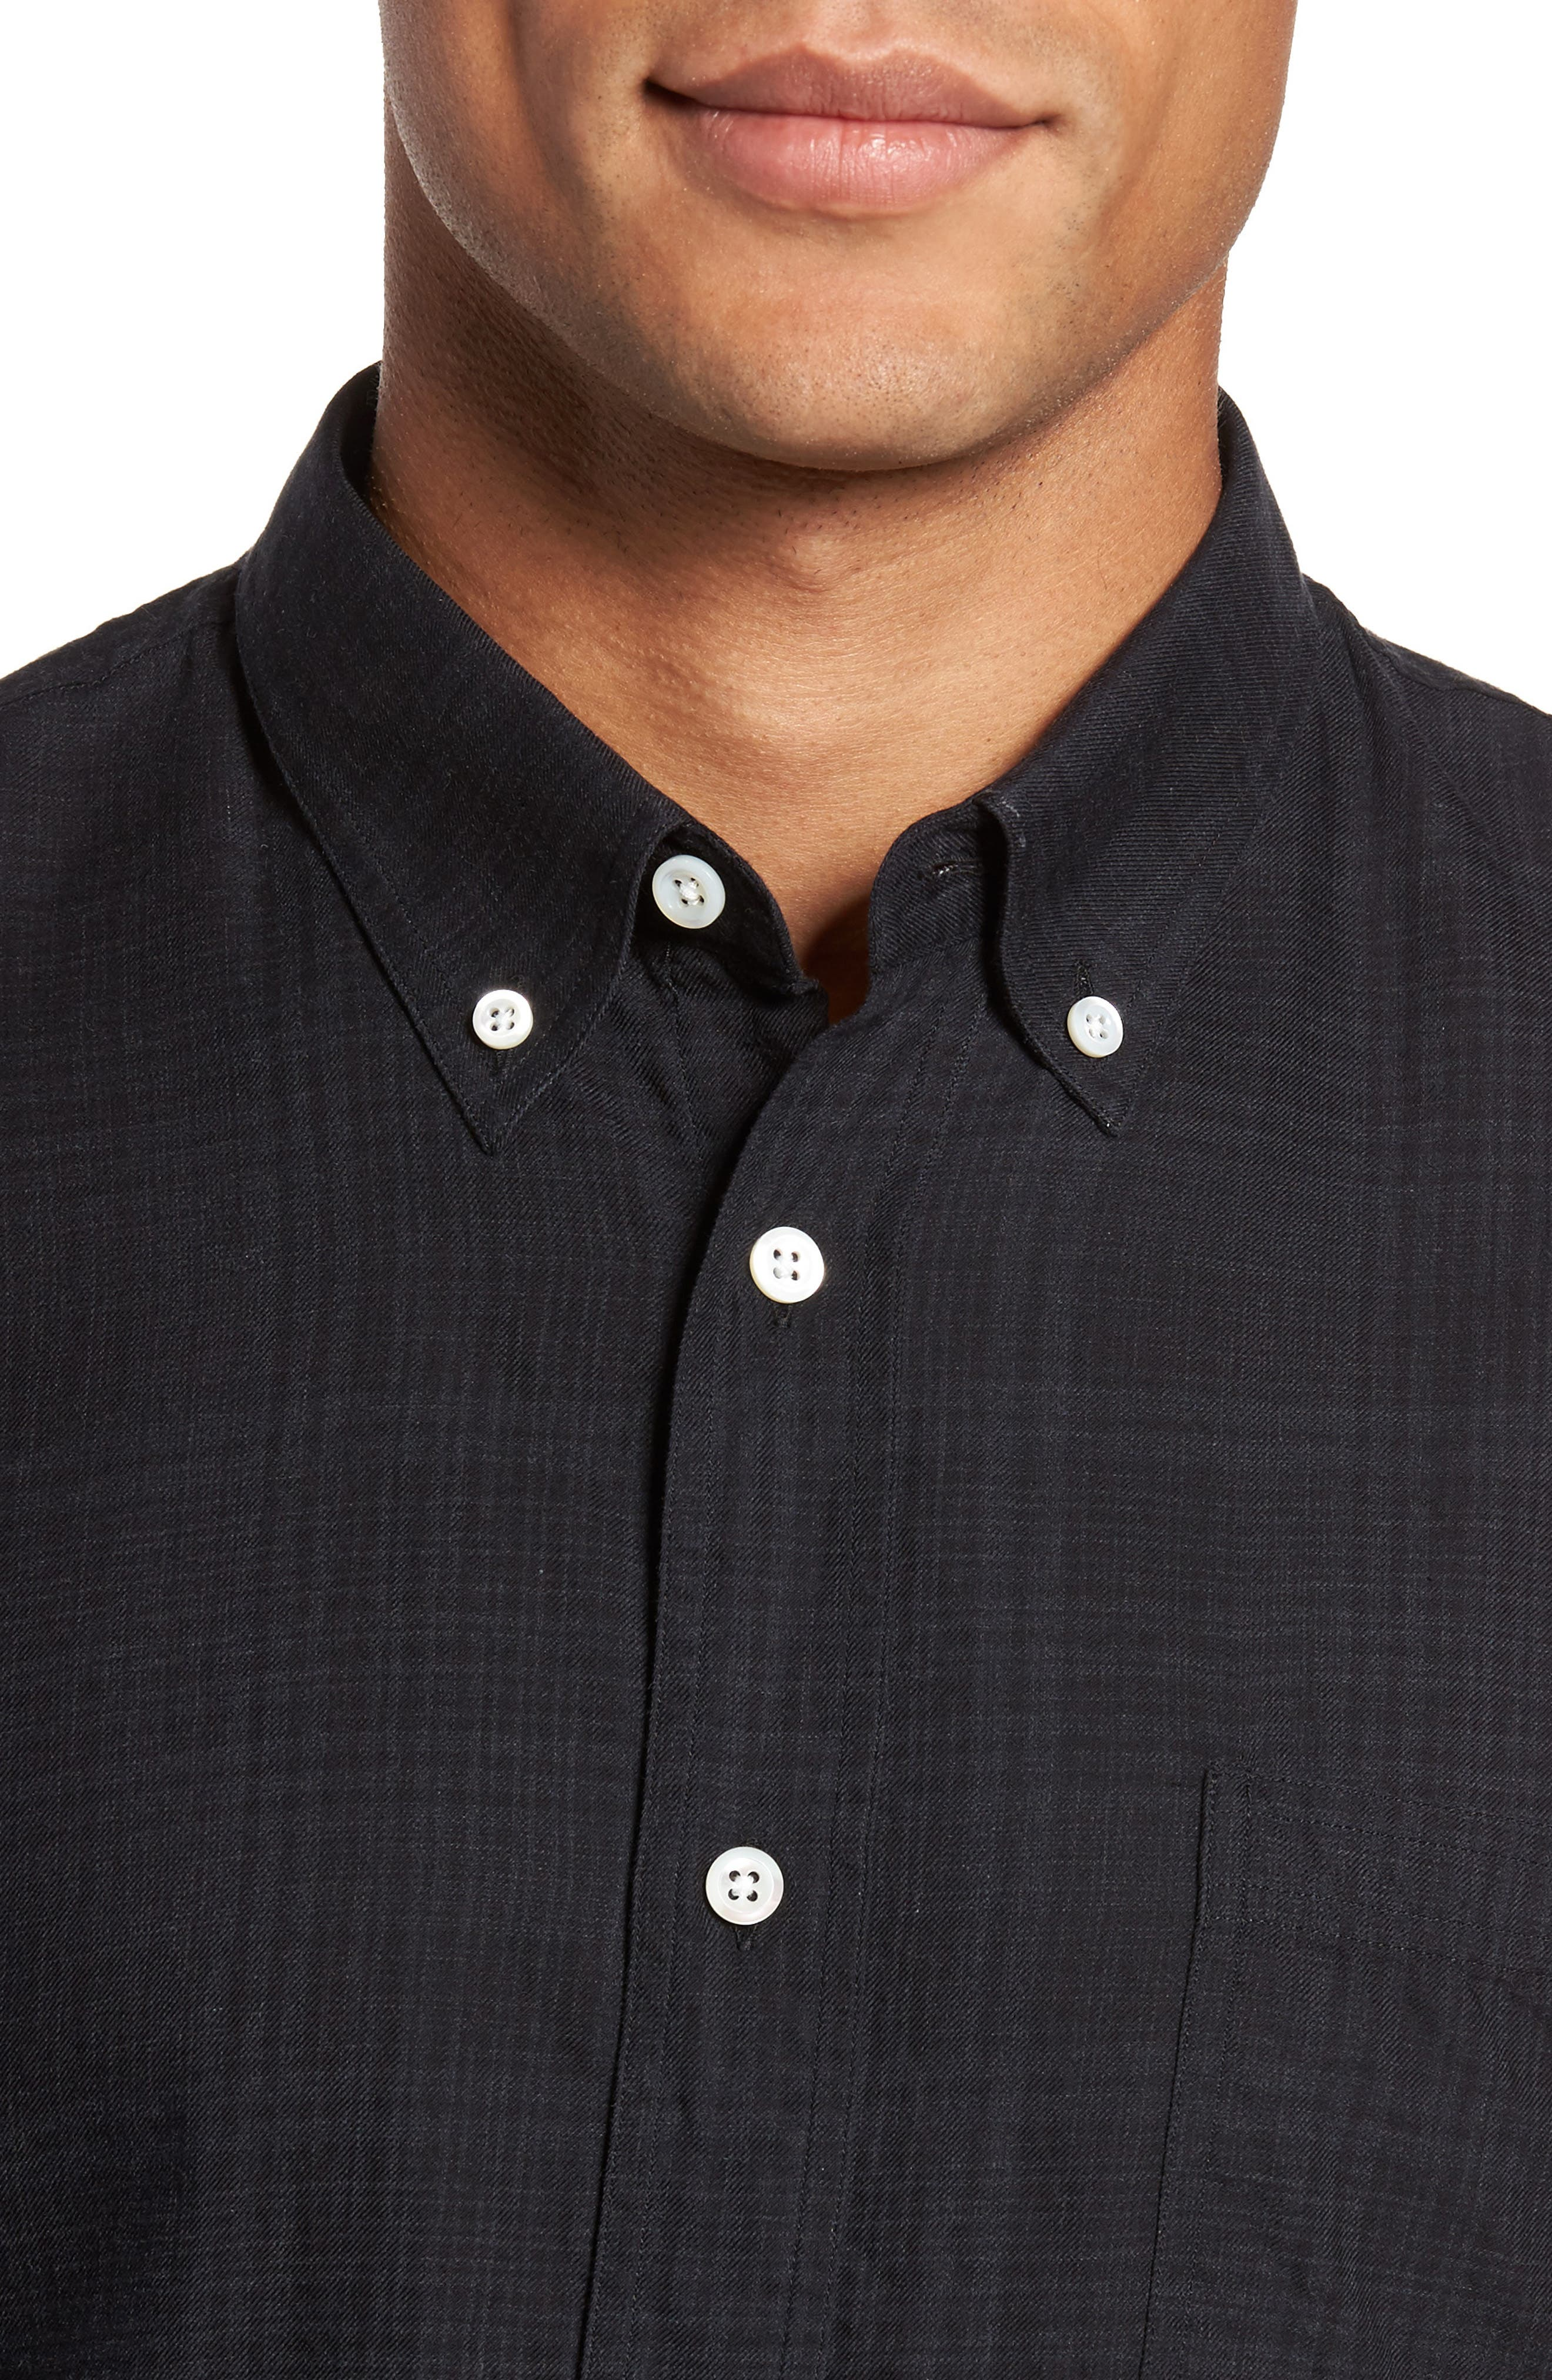 Rosedale Slim Fit Plaid Sport Shirt,                             Alternate thumbnail 4, color,                             Charcoal